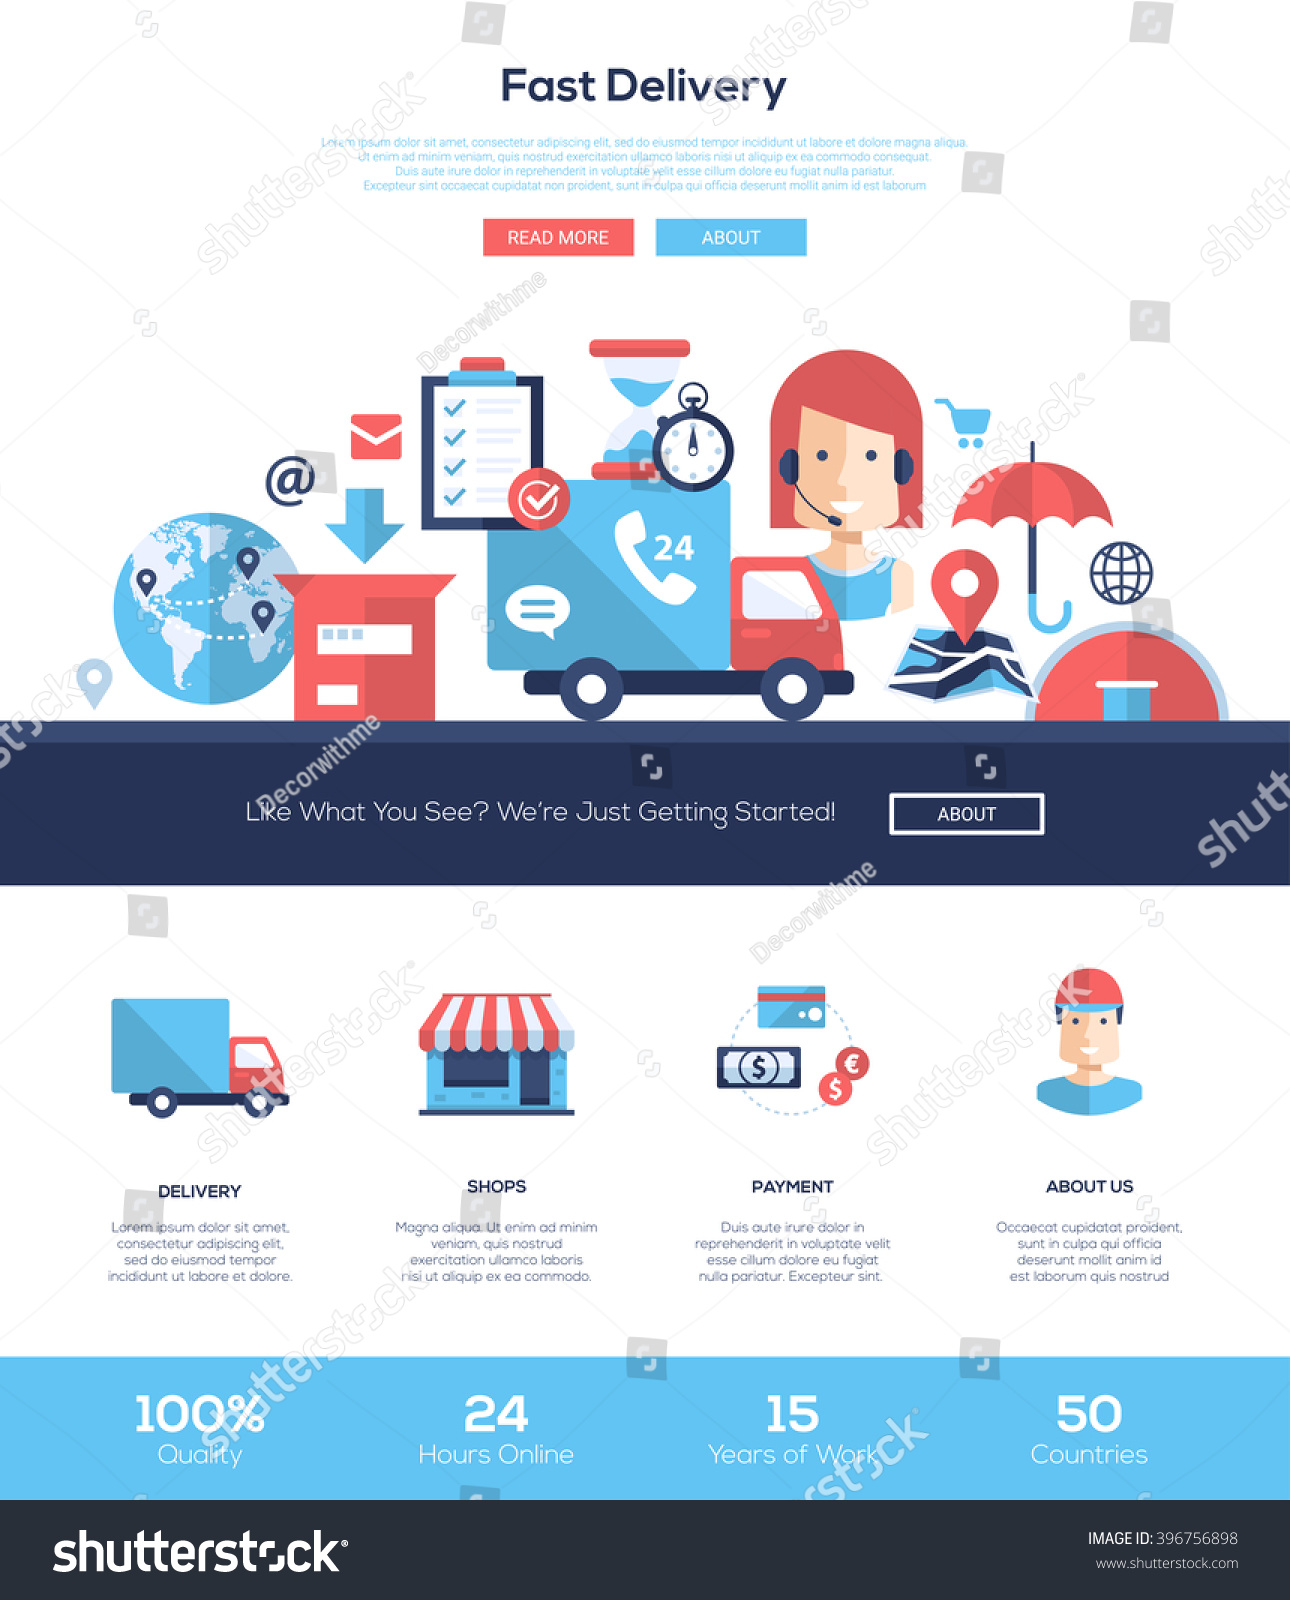 Fast Delivery Services One Page Website Stock Photo (Photo, Vector ...